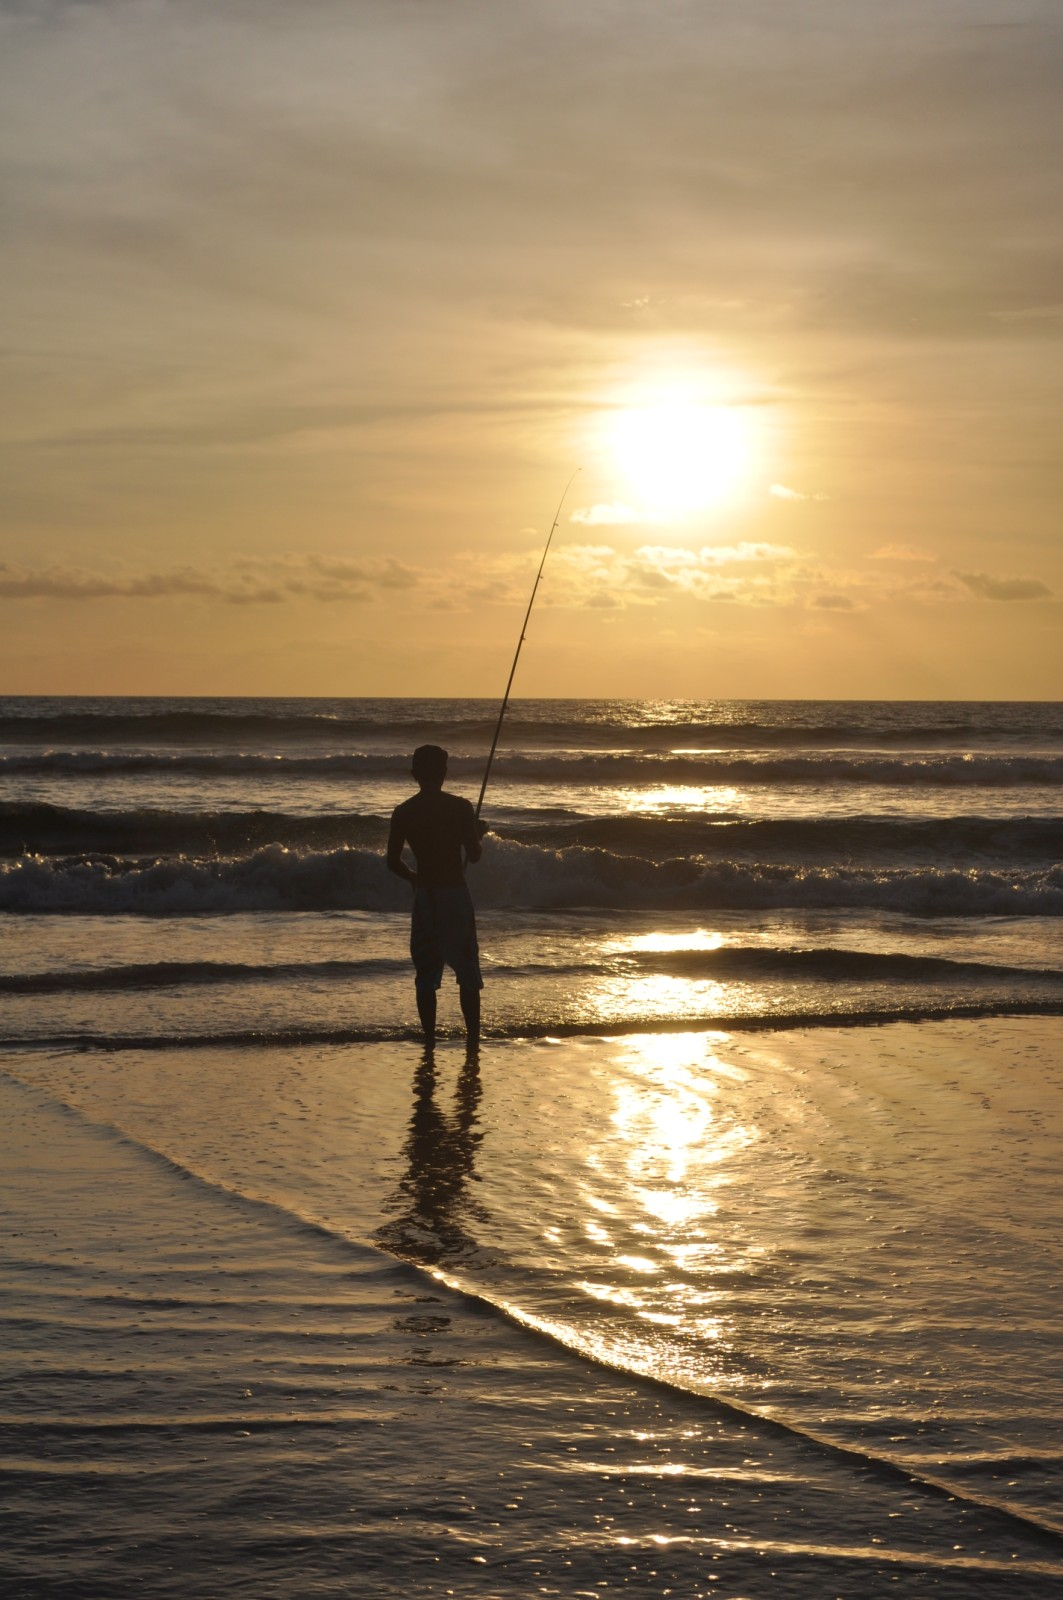 Fisherman at sunset in Bali